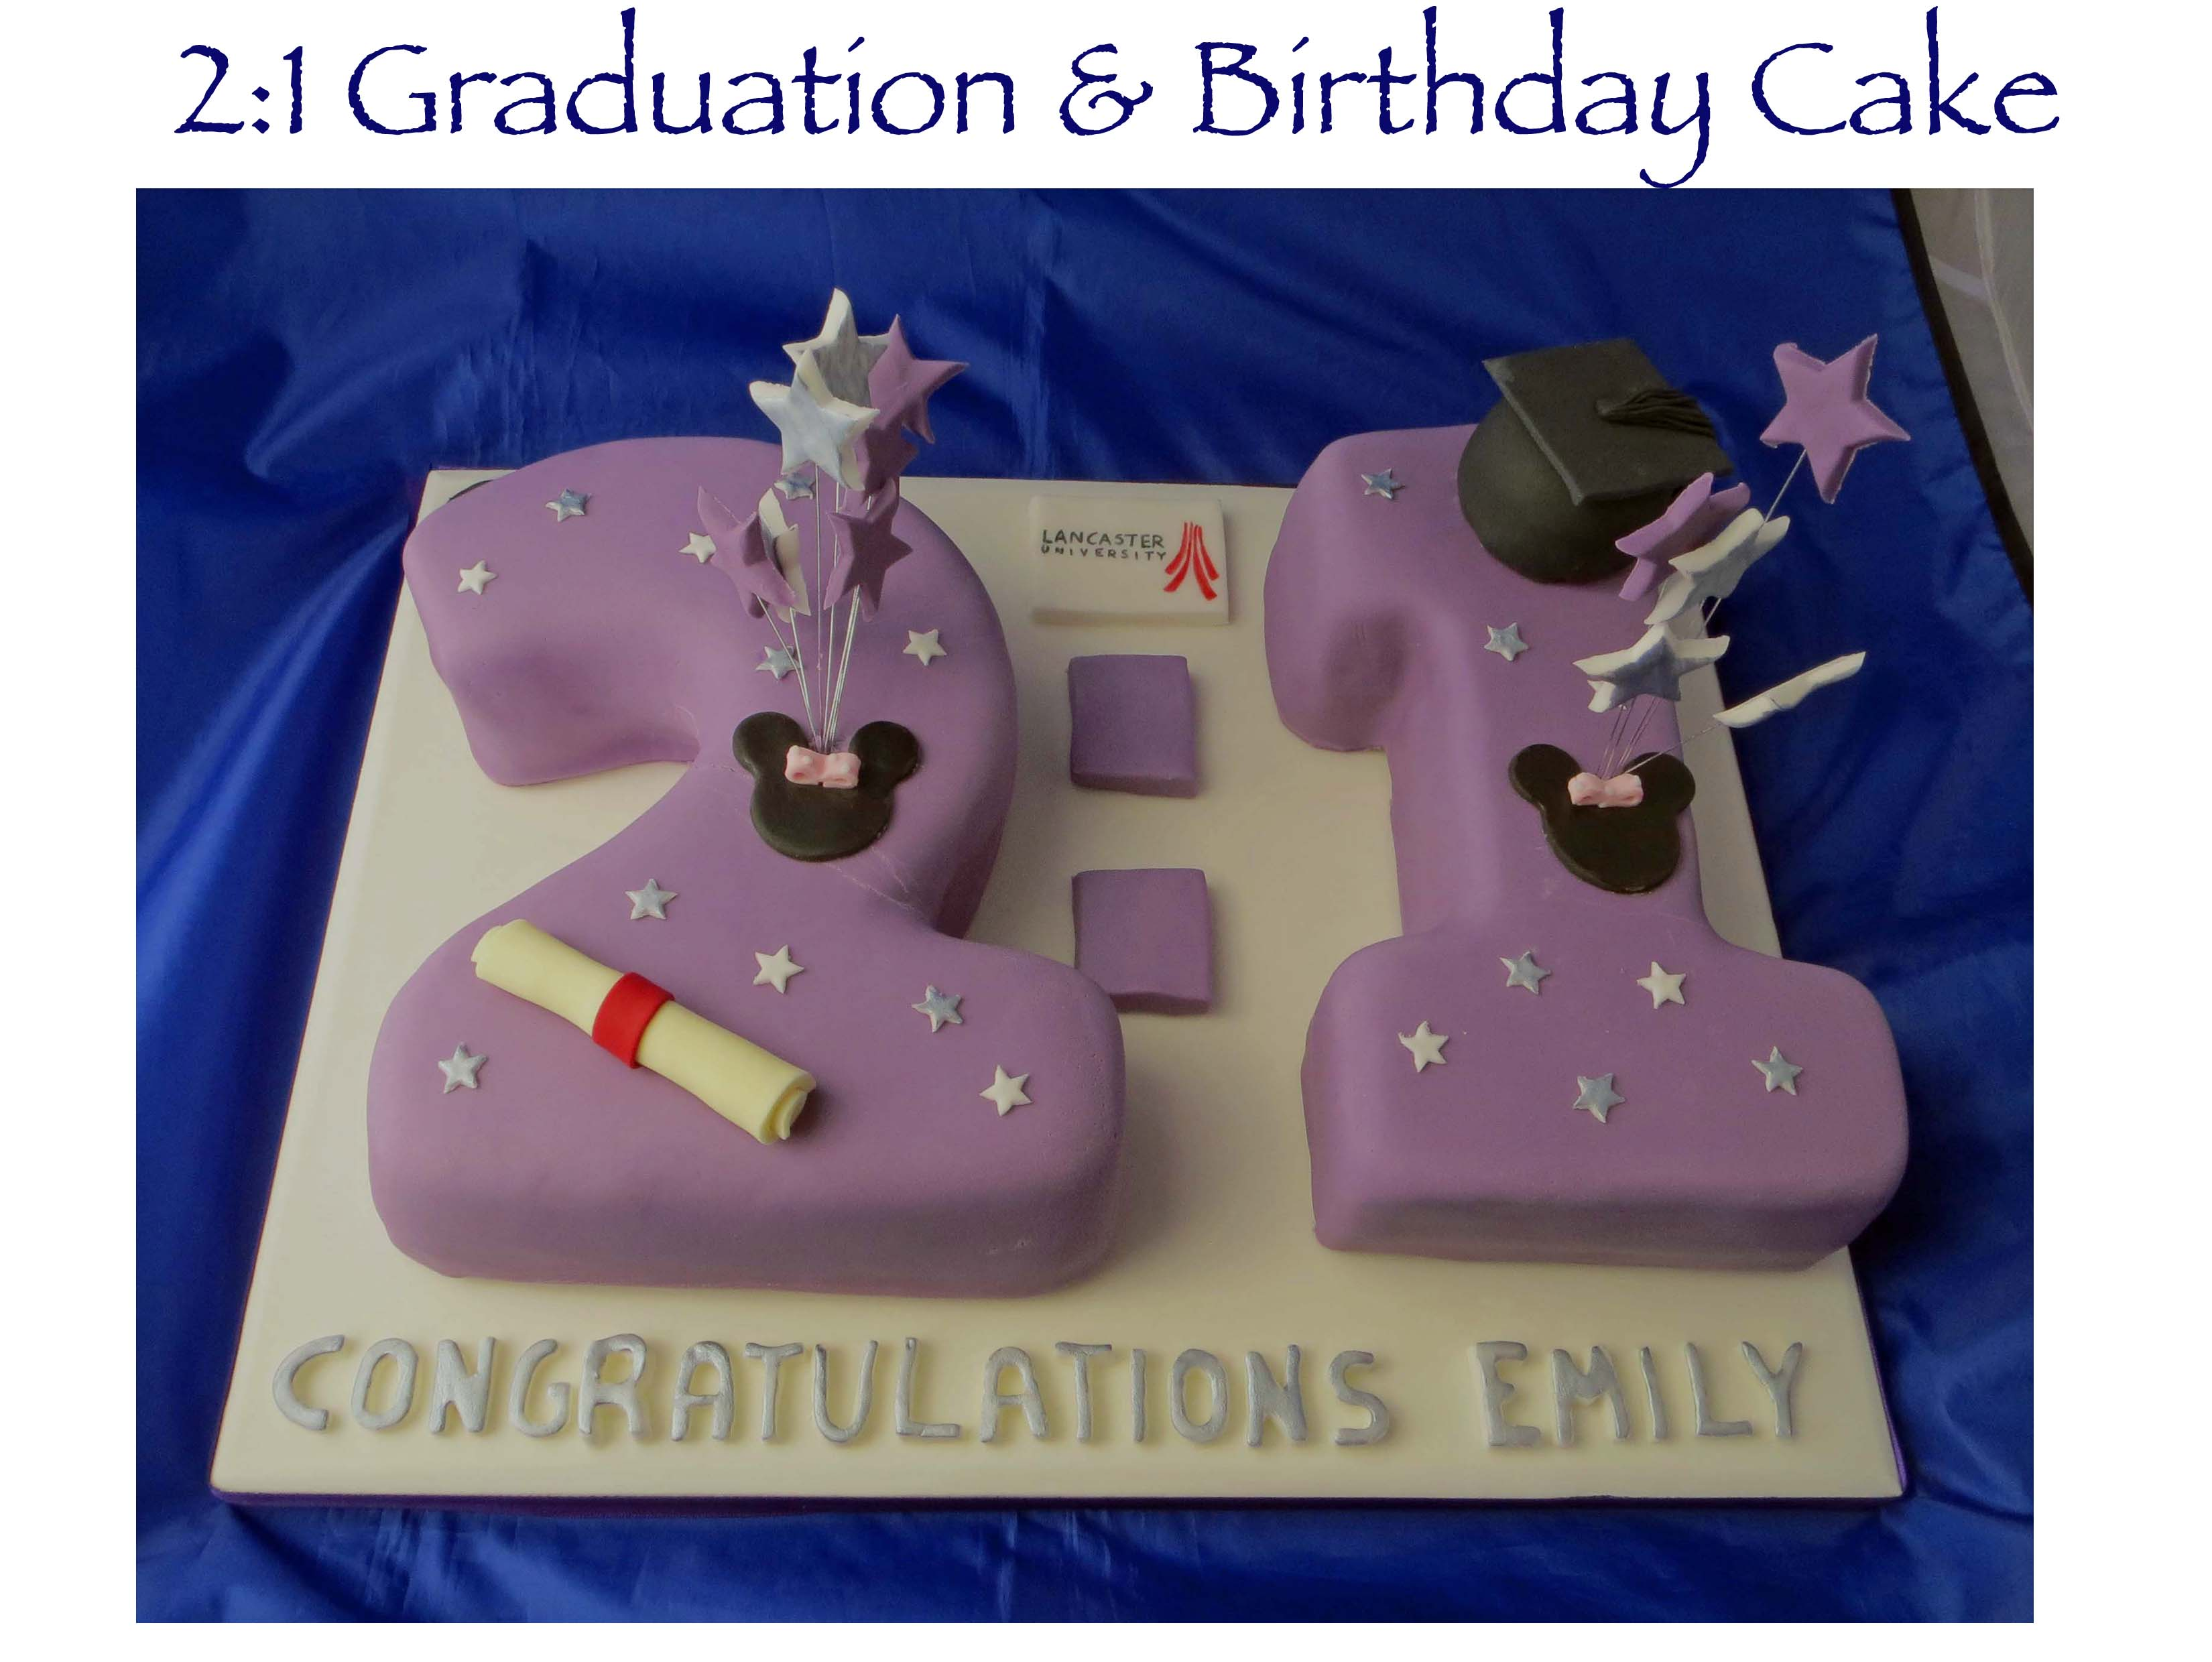 21 Graduation & Birthday Cake